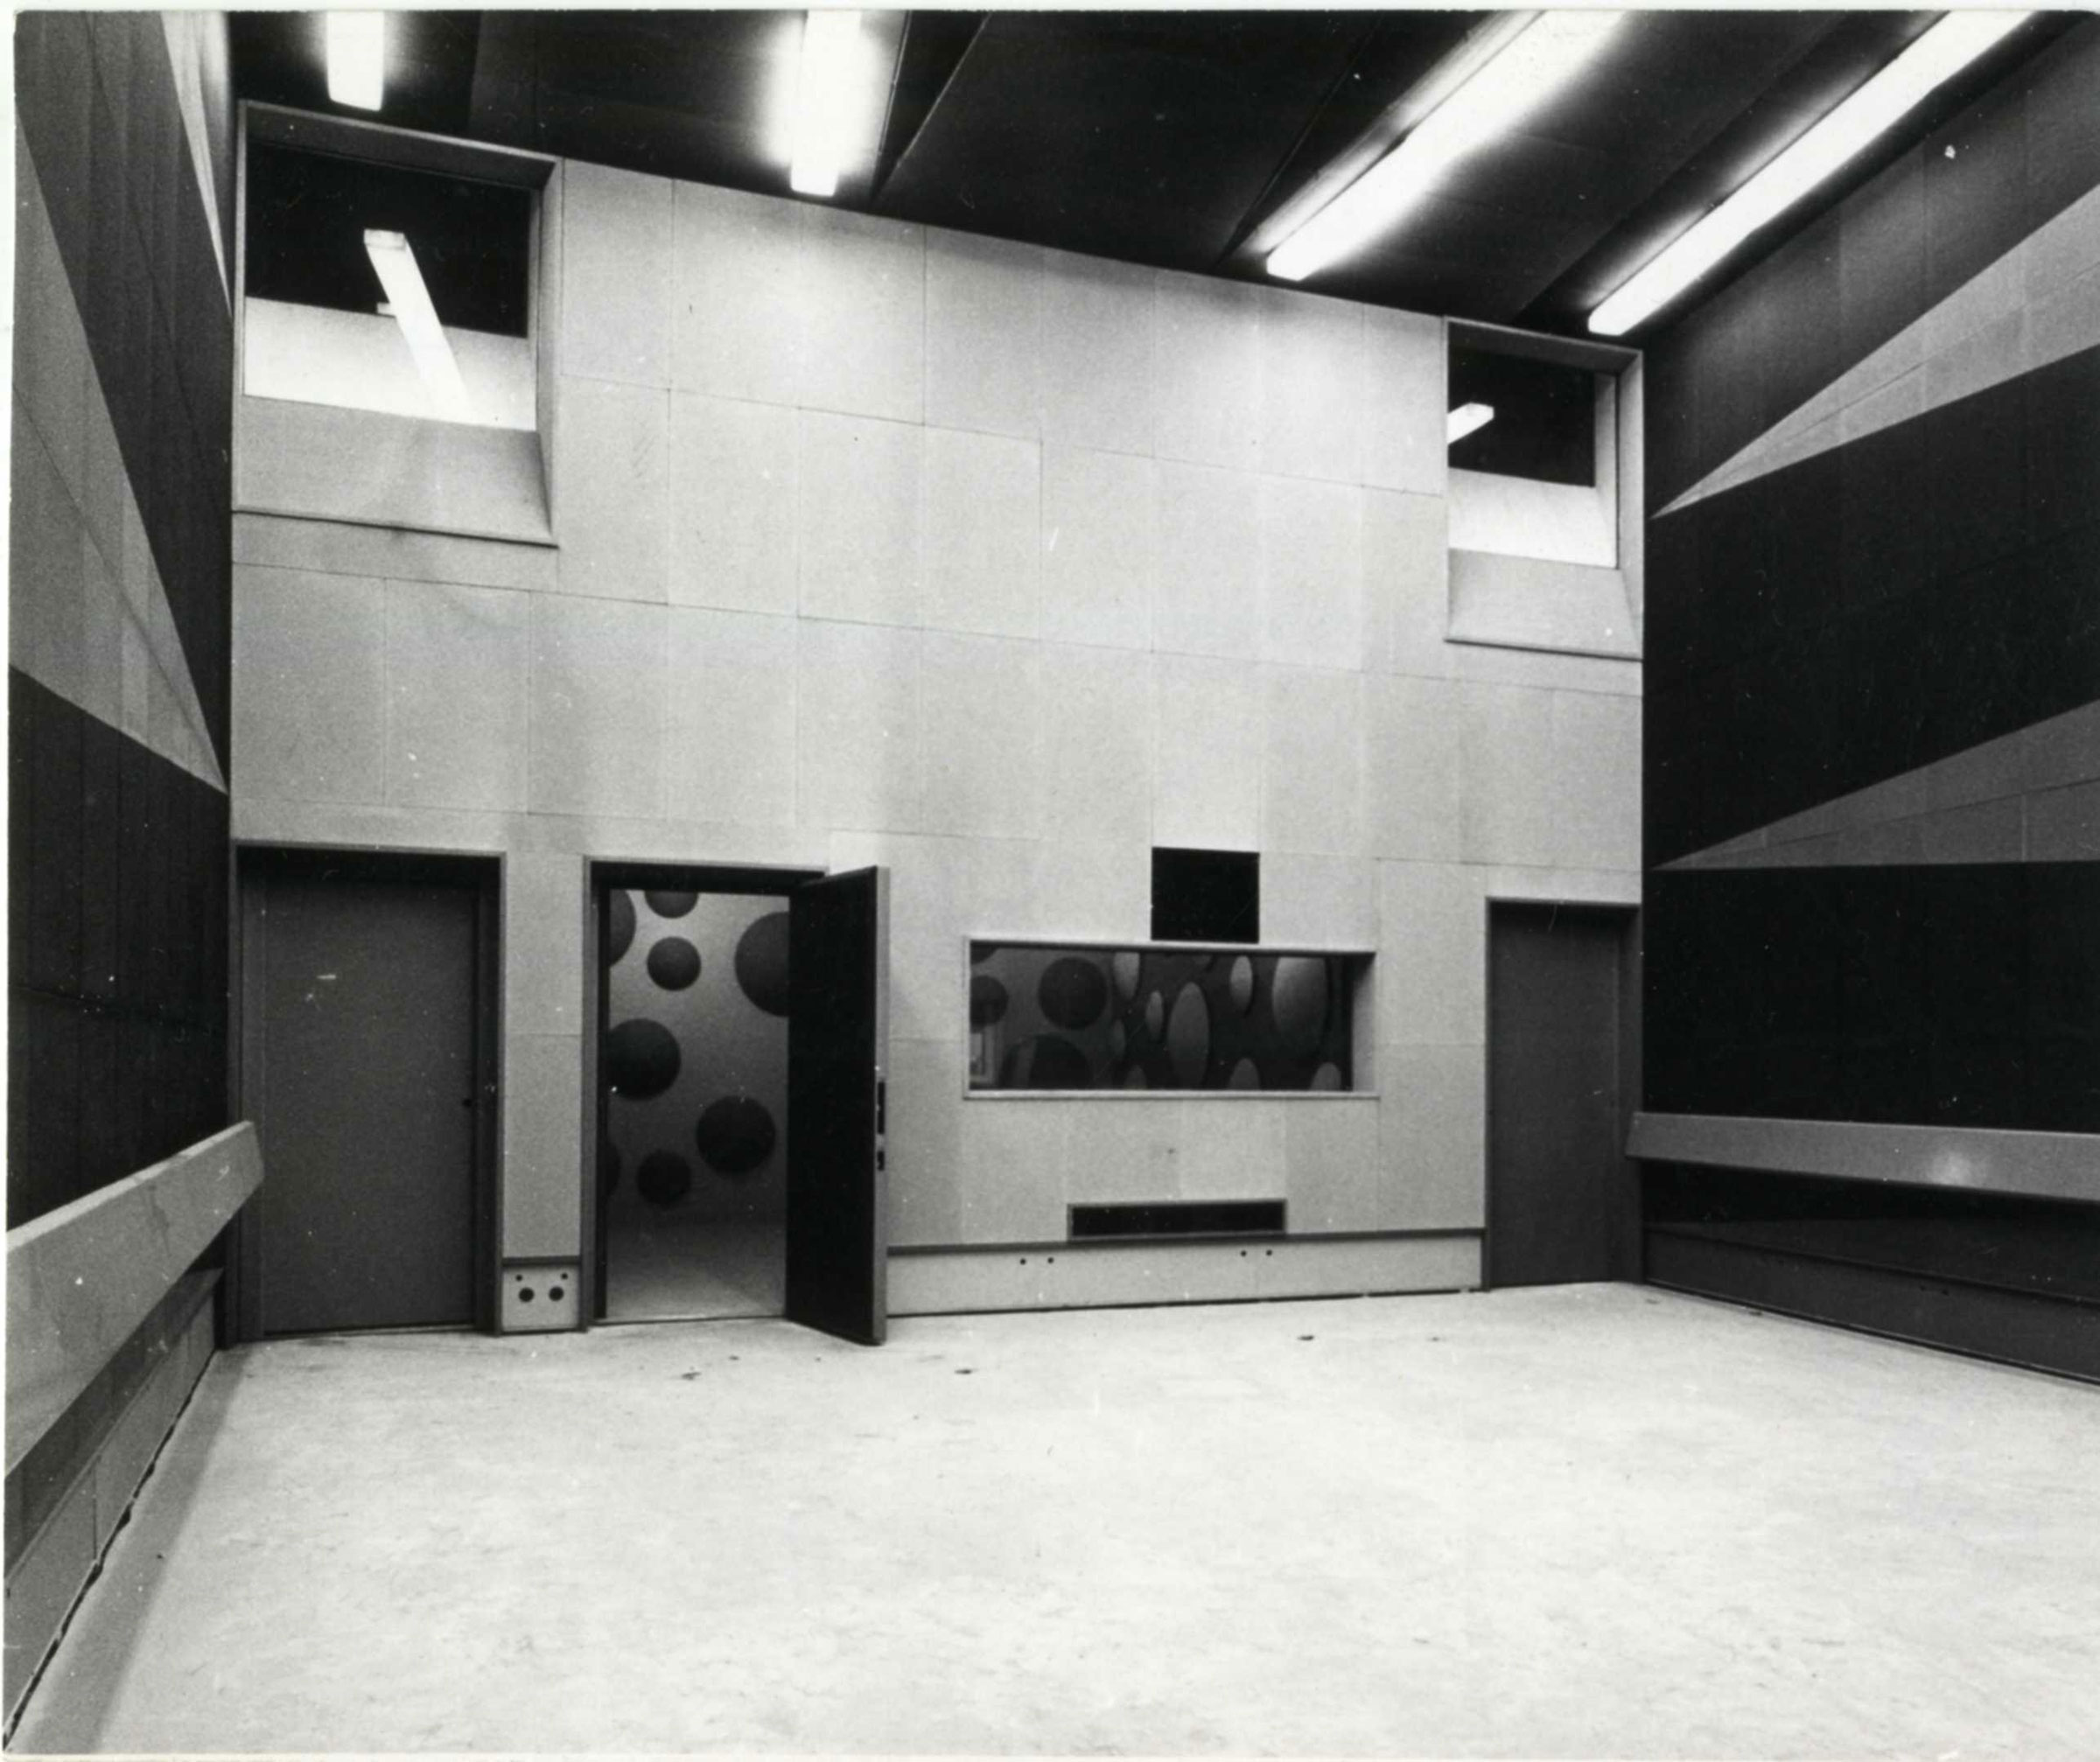 Studio 116 en 1963 / Archives écrites de Radio France